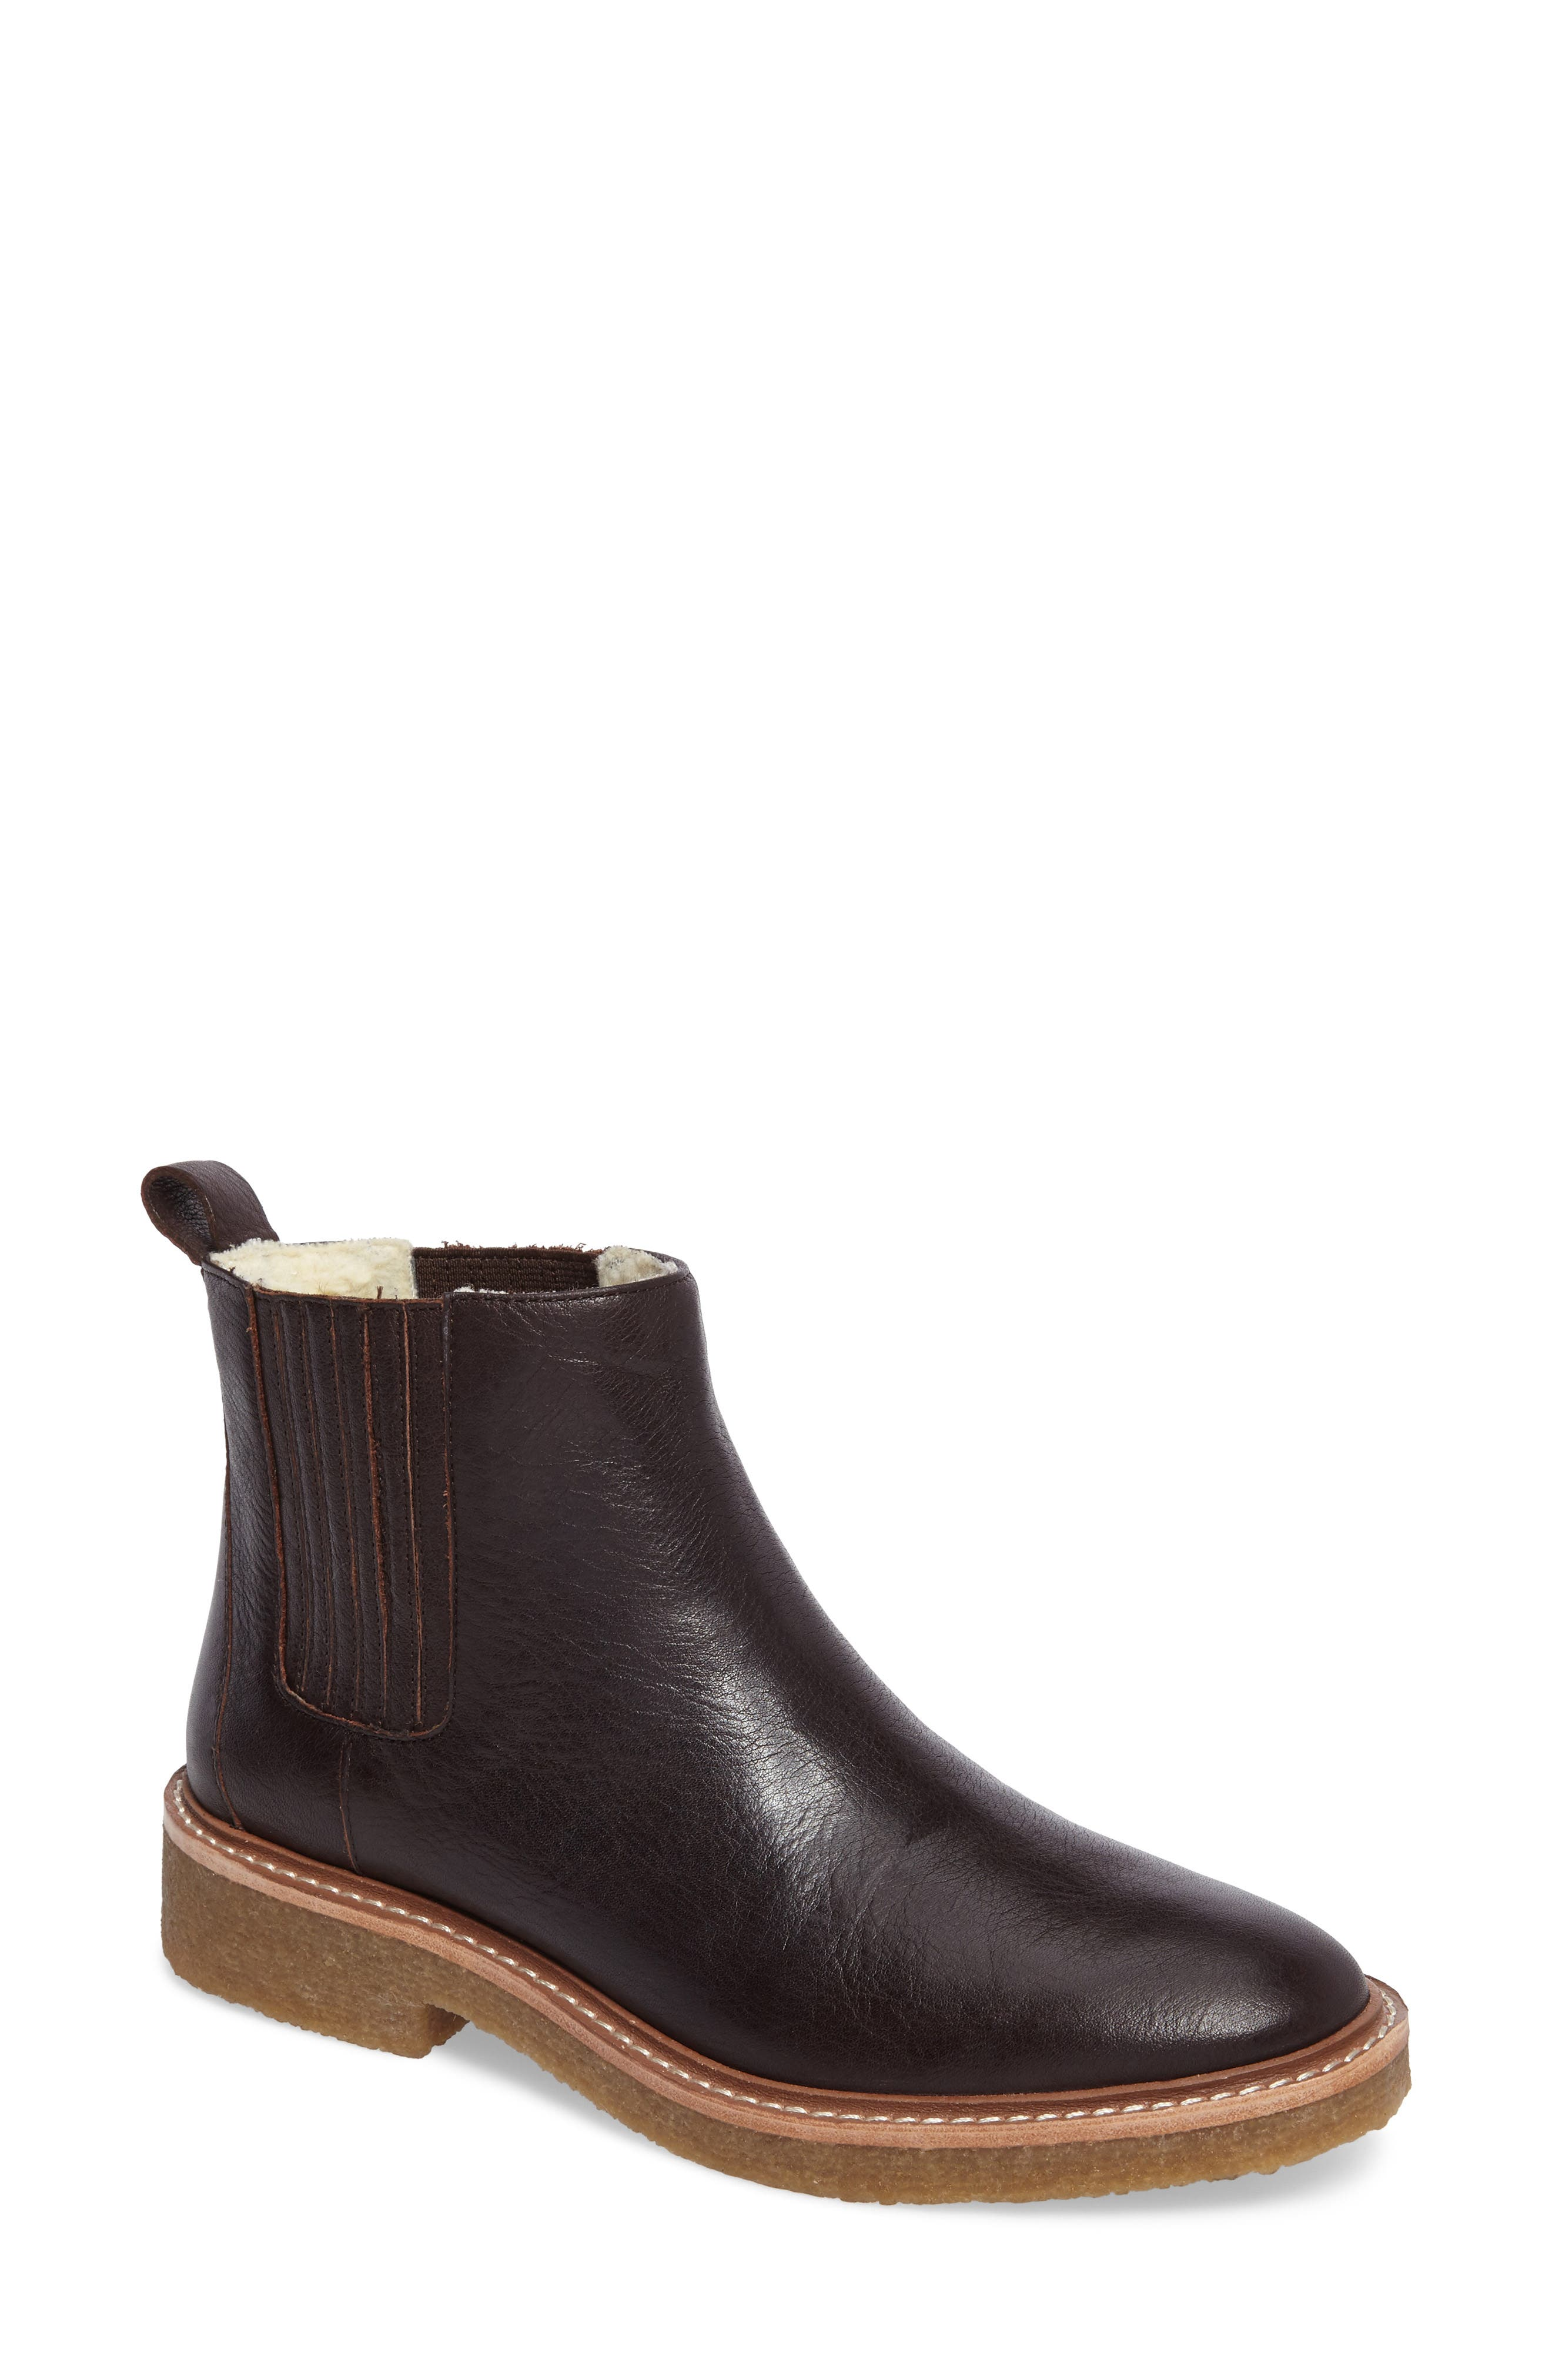 CHELSEA FAUX SHEARLING LINED BOOT